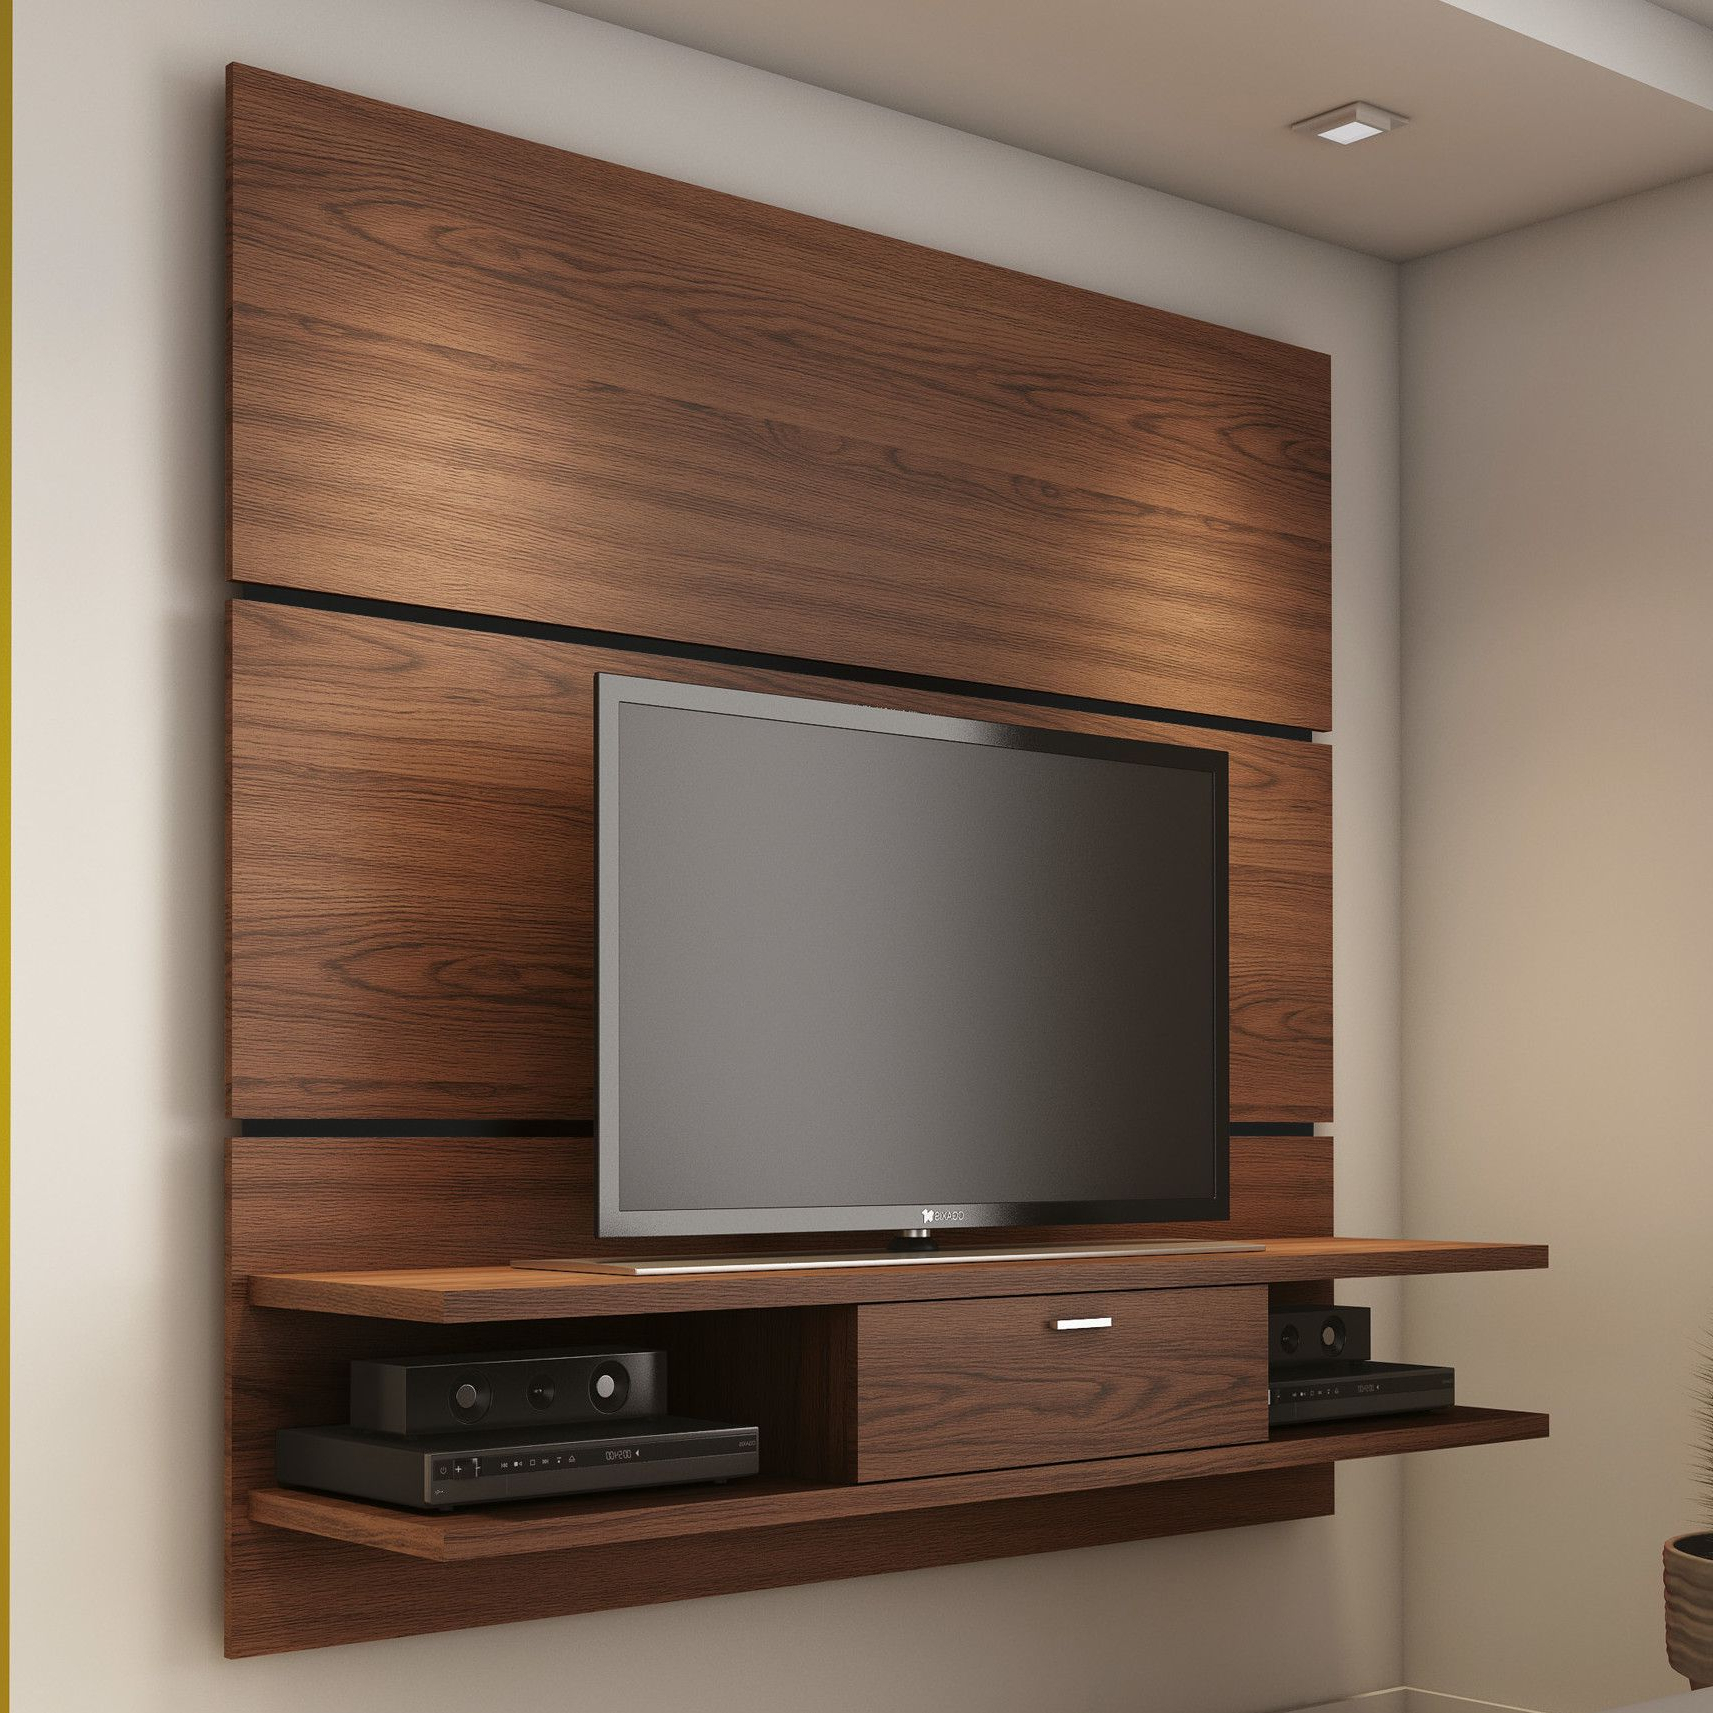 Most Popular Small Bedroom Tv Unit Wooden Wall Mounted Tv Stand For Bedroom In With Regard To Stylish Tv Cabinets (View 7 of 20)